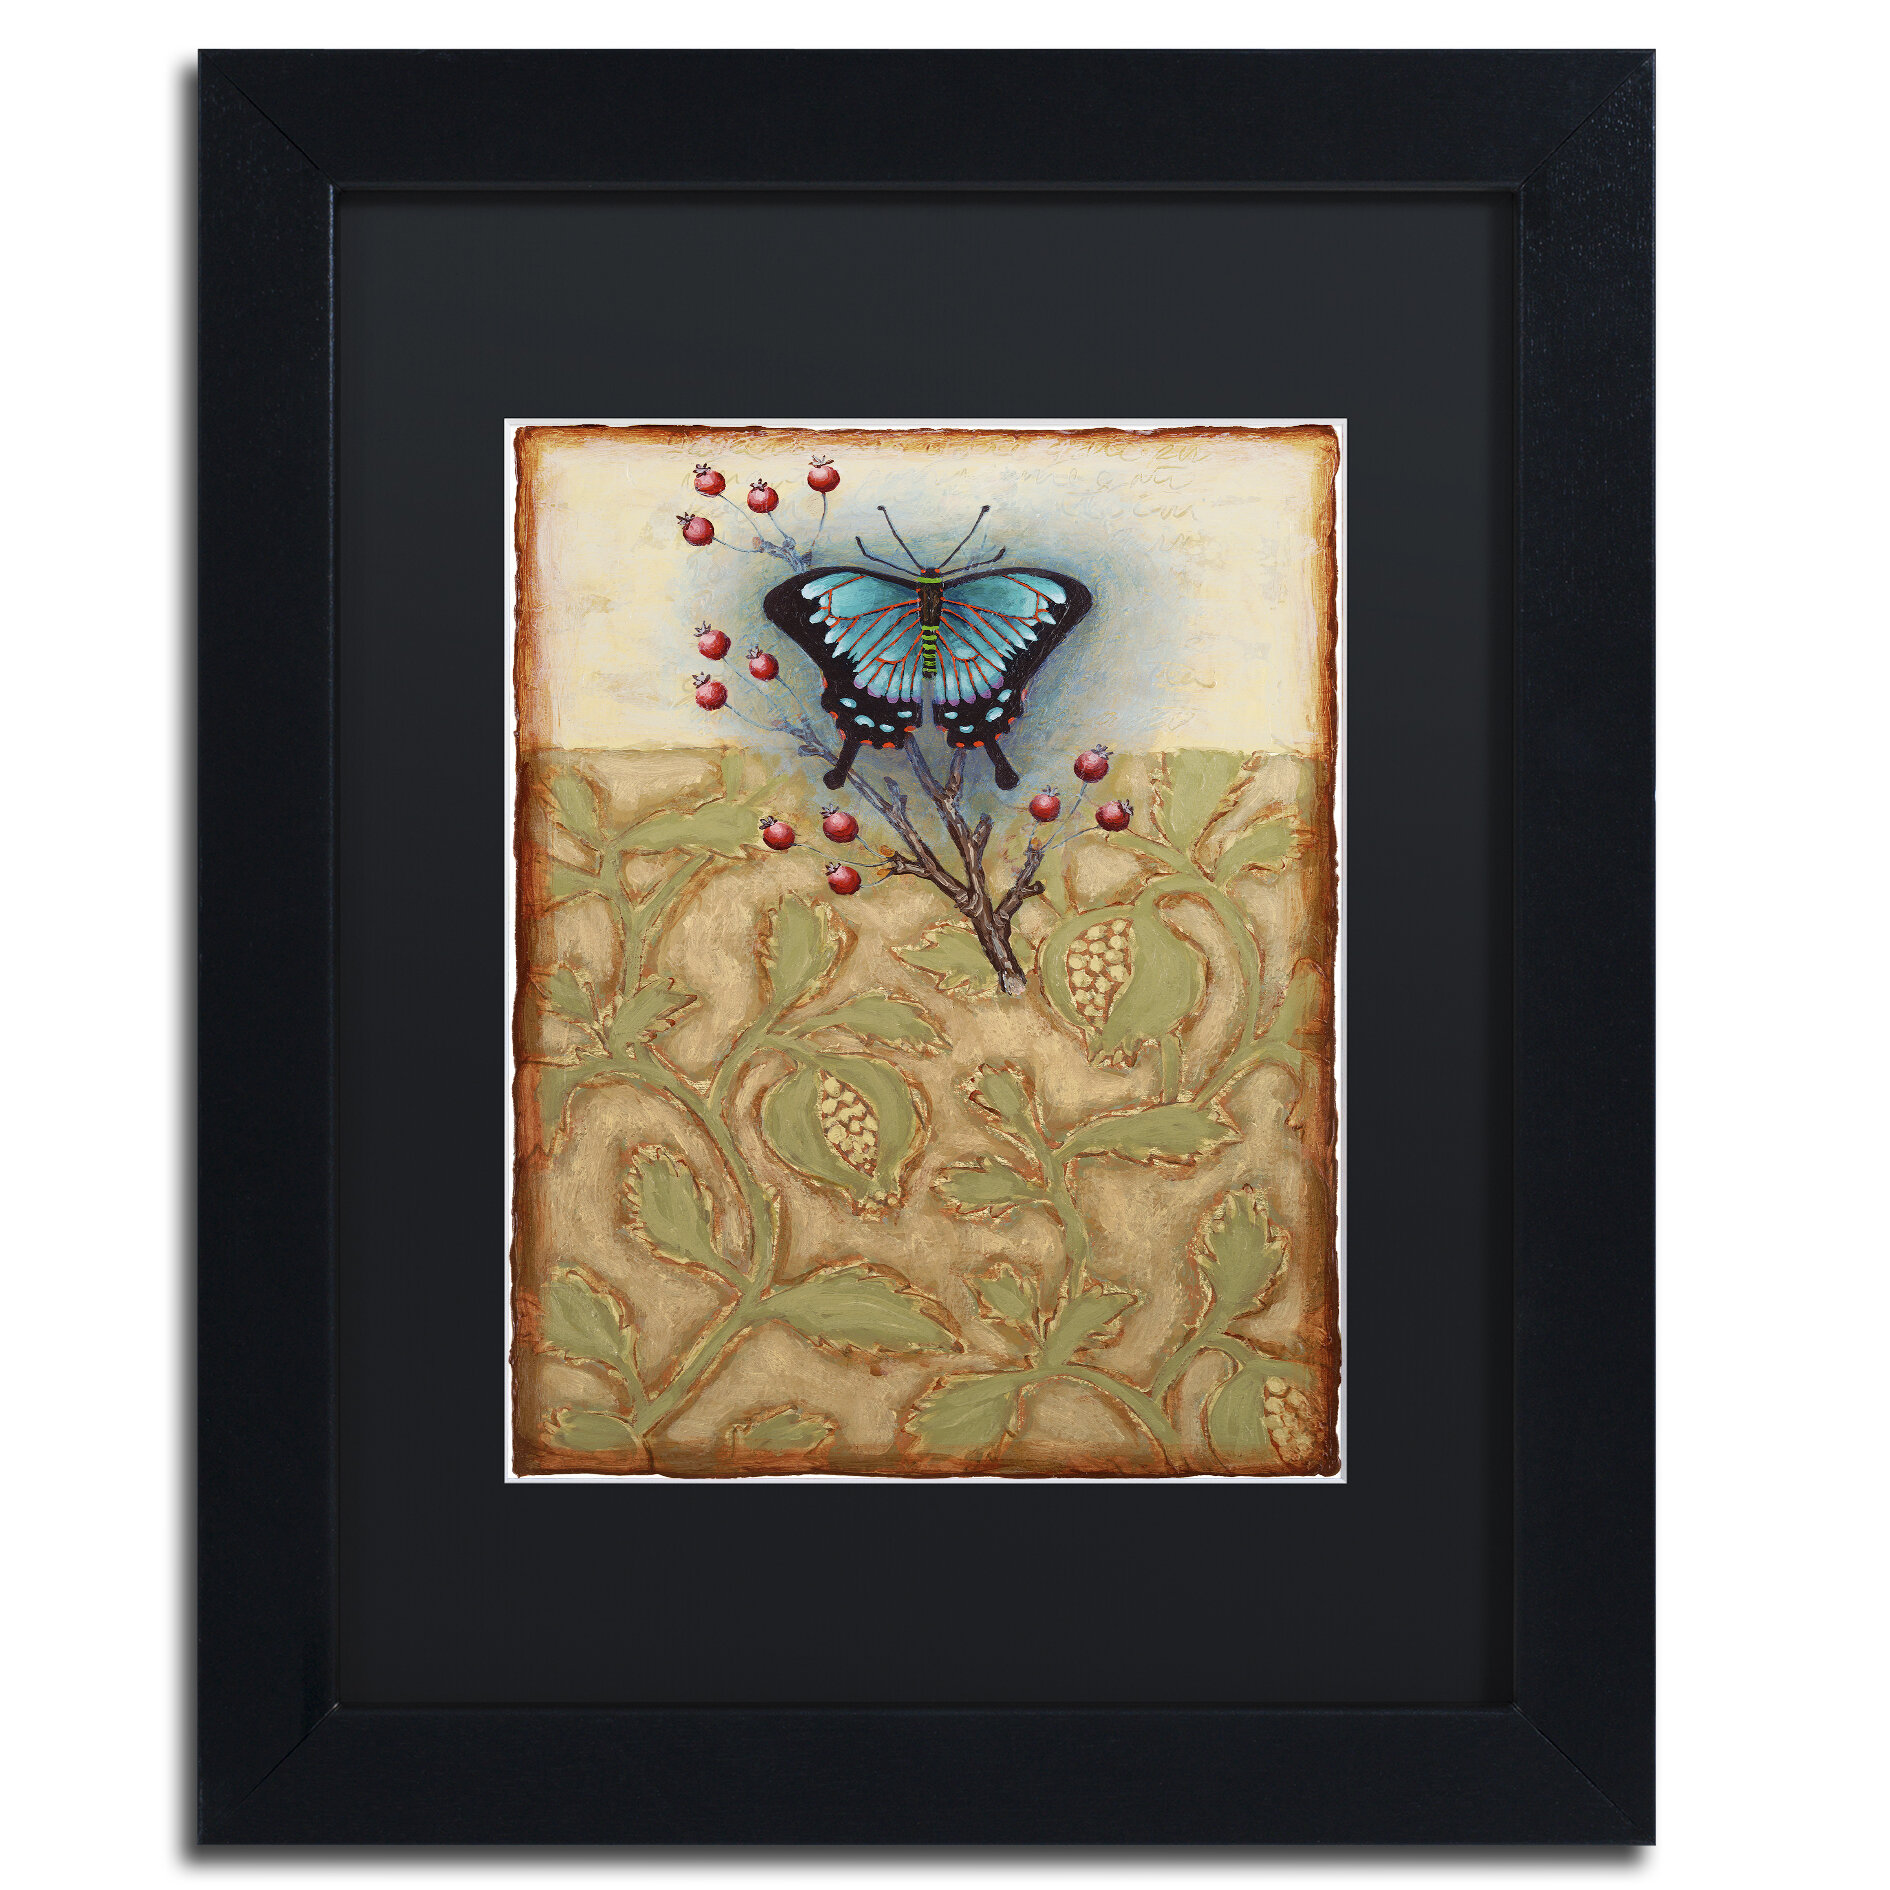 Trademark Art Salt Meadow Butterfly By Rachel Paxton Framed Painting Print Wayfair